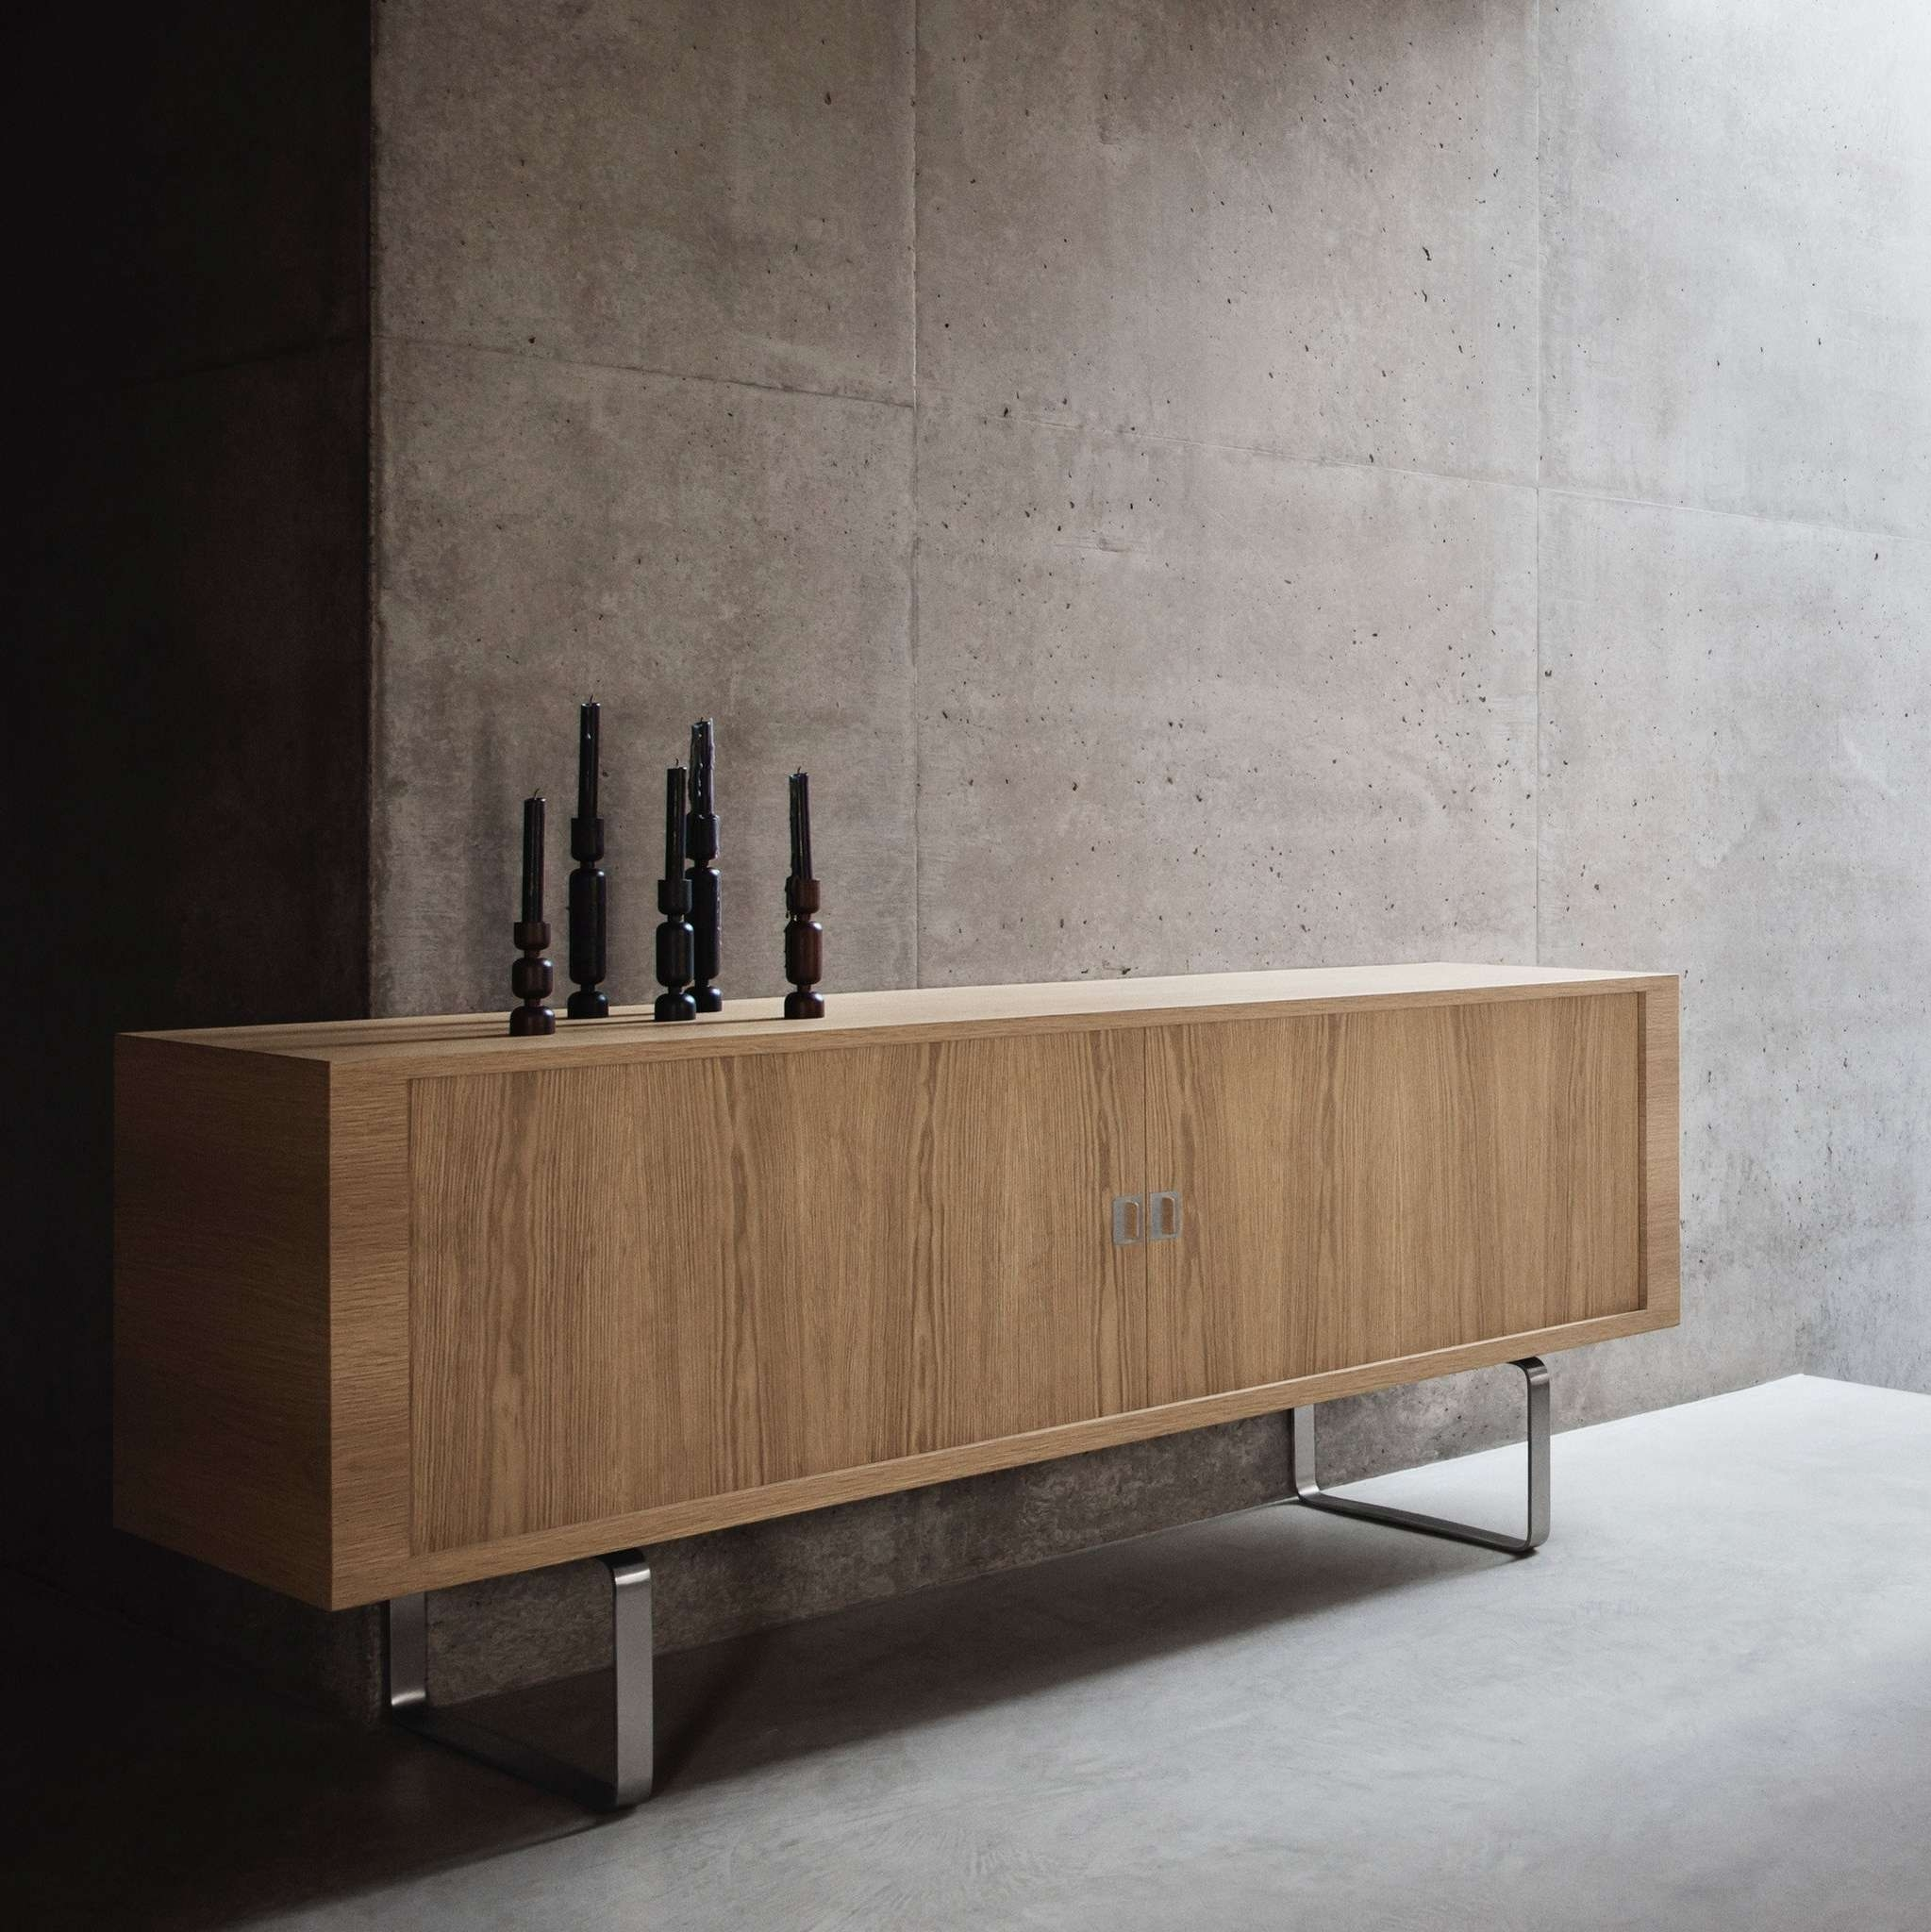 Ch825 Credenza Sideboardcarl Hansen & Søn — Haus® Pertaining To Credenza Sideboards (View 14 of 20)